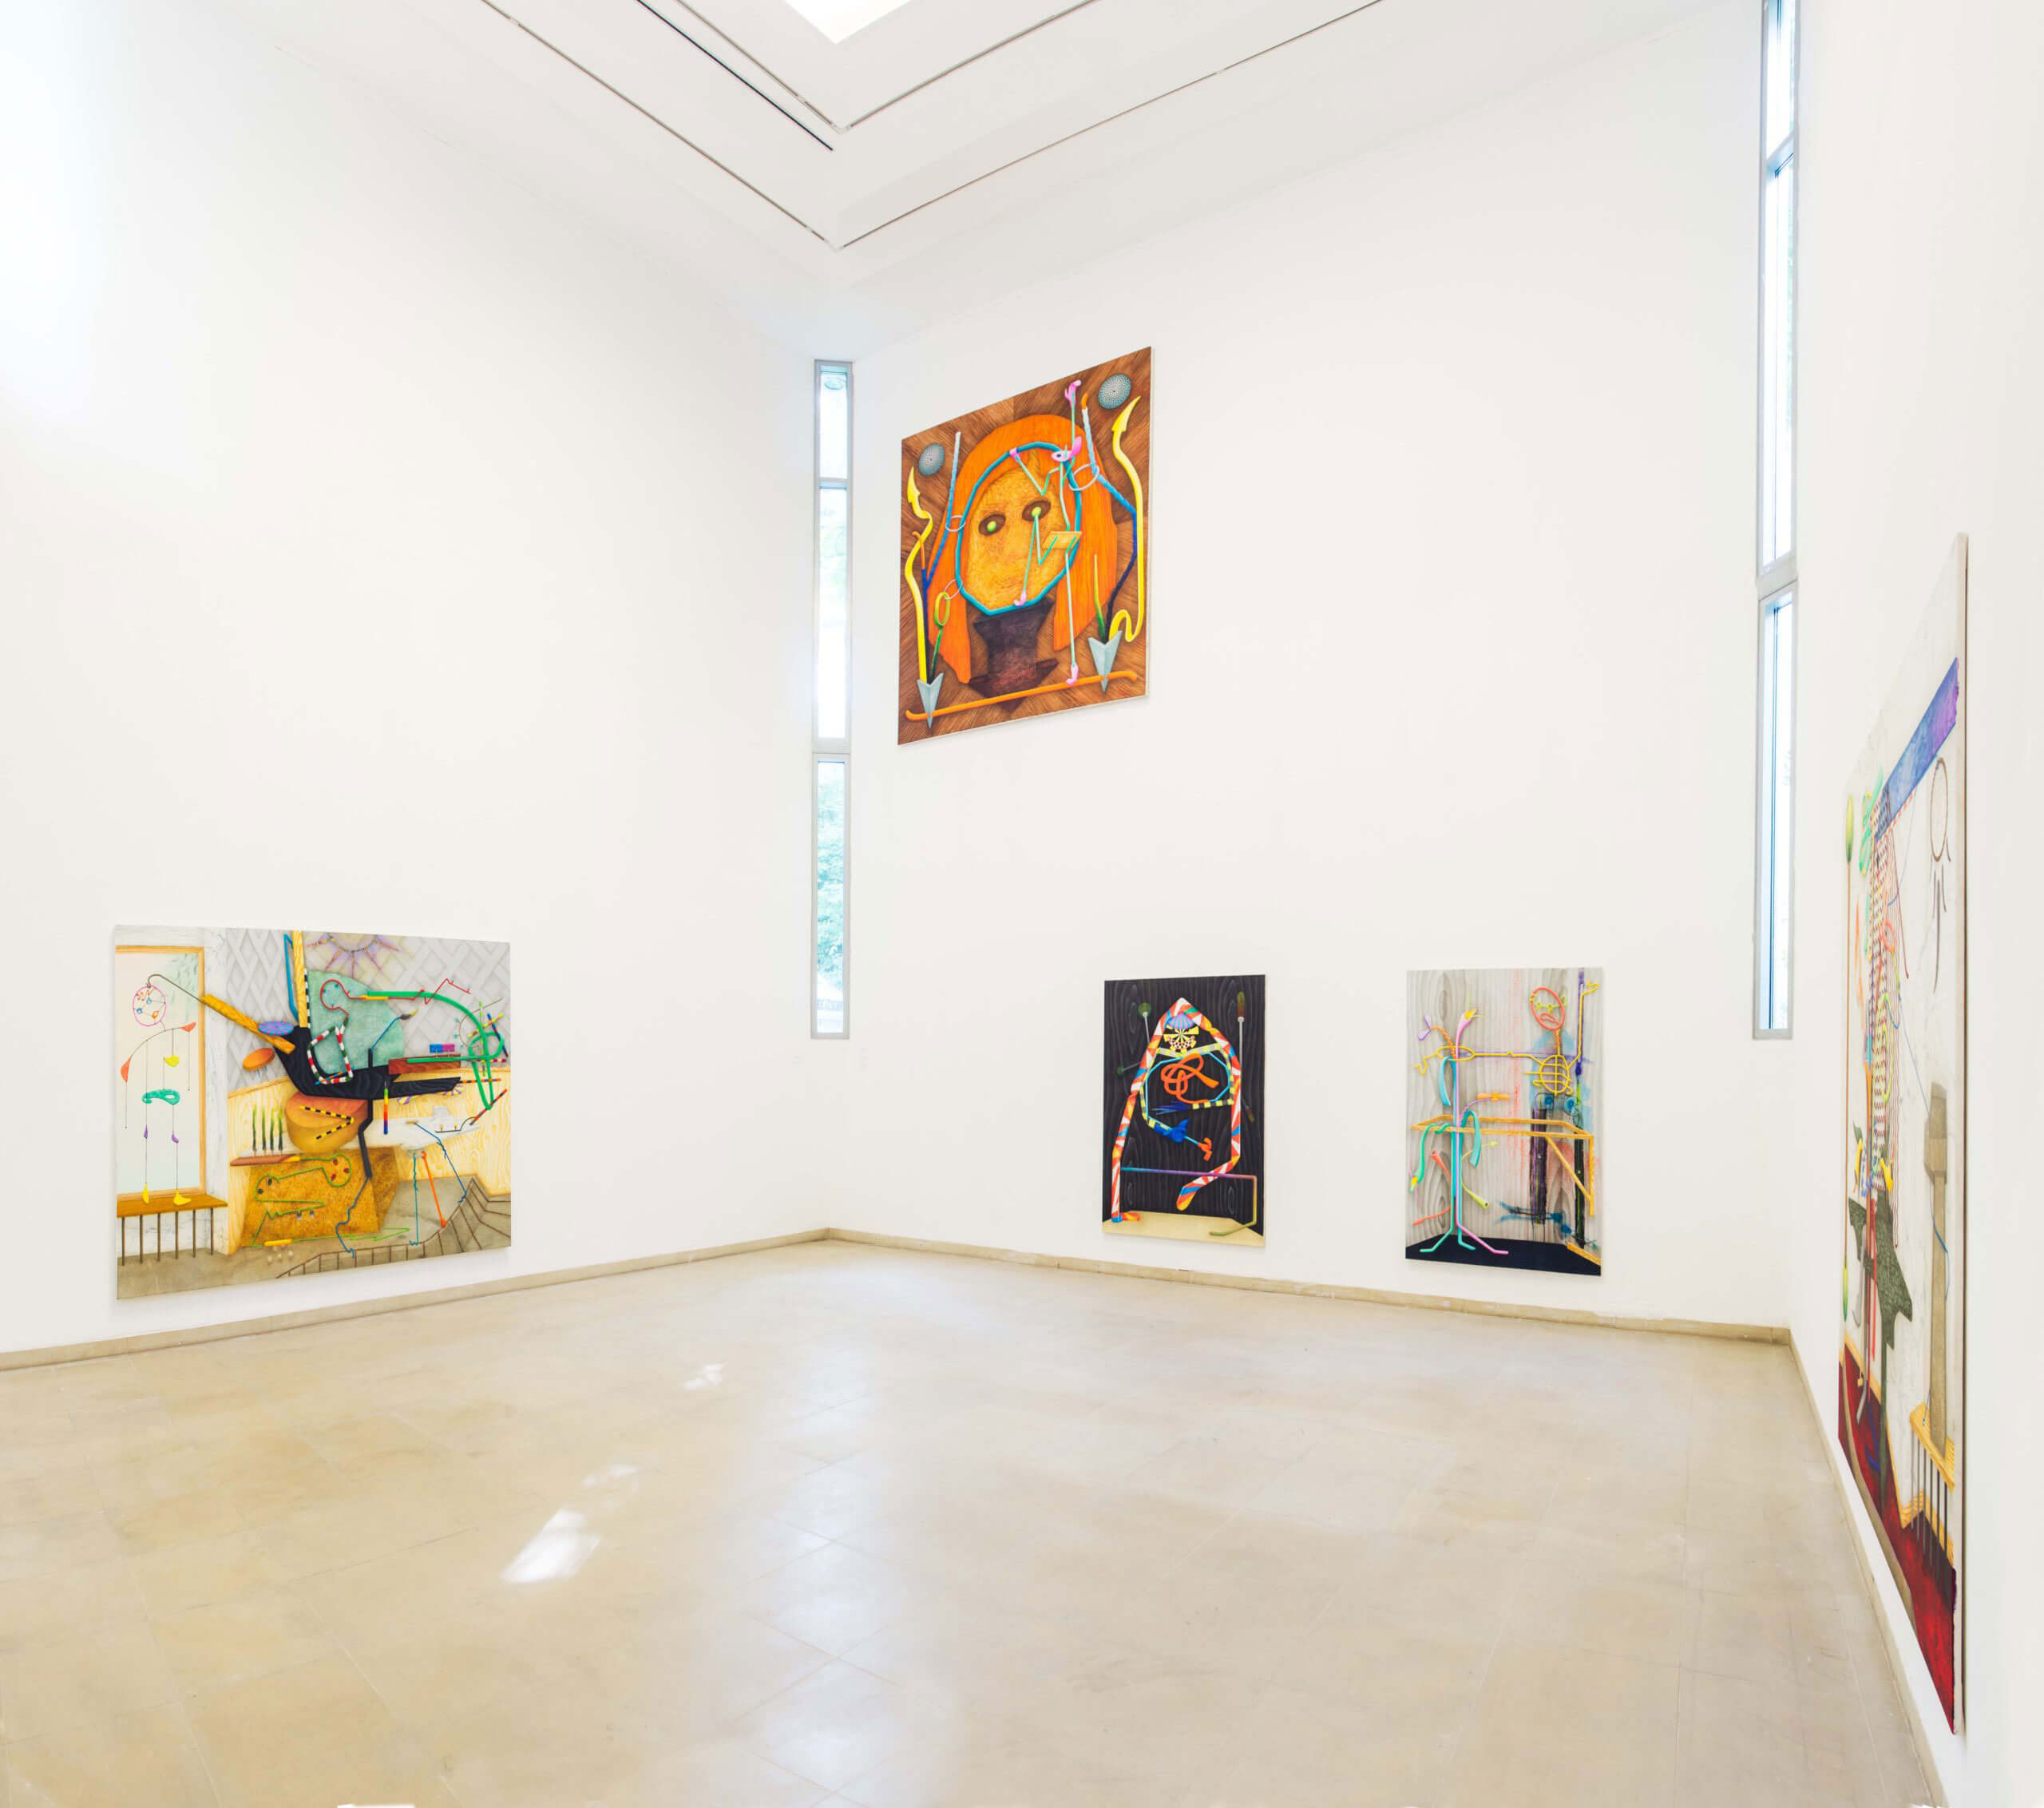 Installation view »70. int. berg. Kunstpreis« at Kunstmuseum Solingen